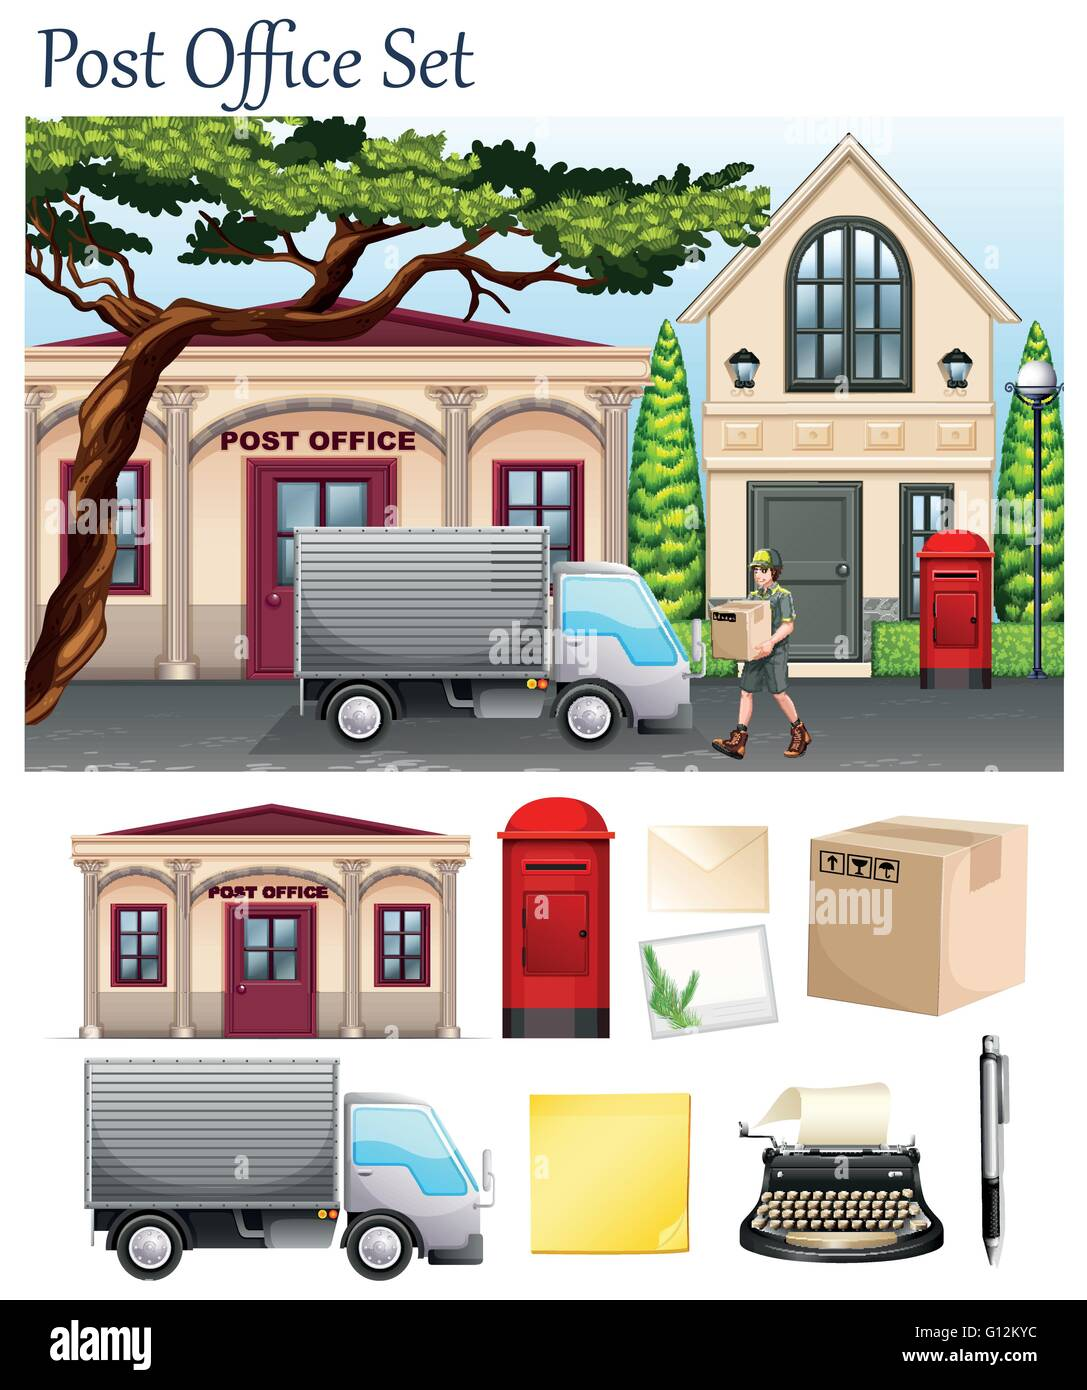 Post office and postal objects illustration - Stock Vector